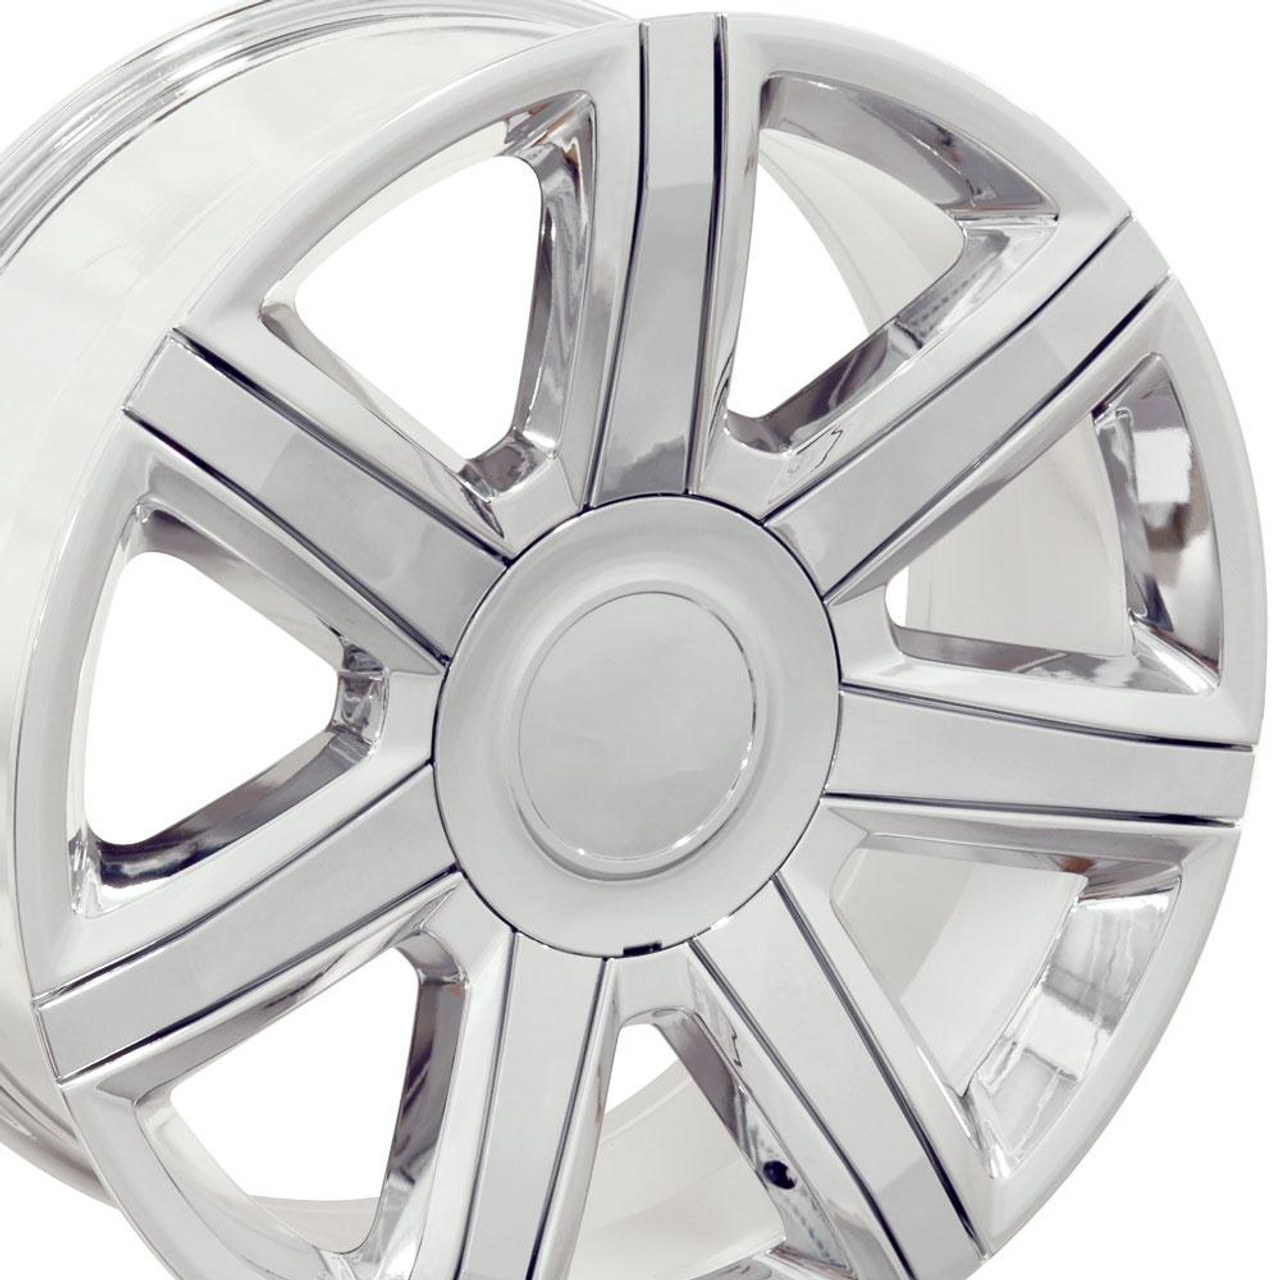 """Chrome 22"""" With Chrome Insert Escalade Style Replica Wheels for Cadillac, GMC, Chevy"""